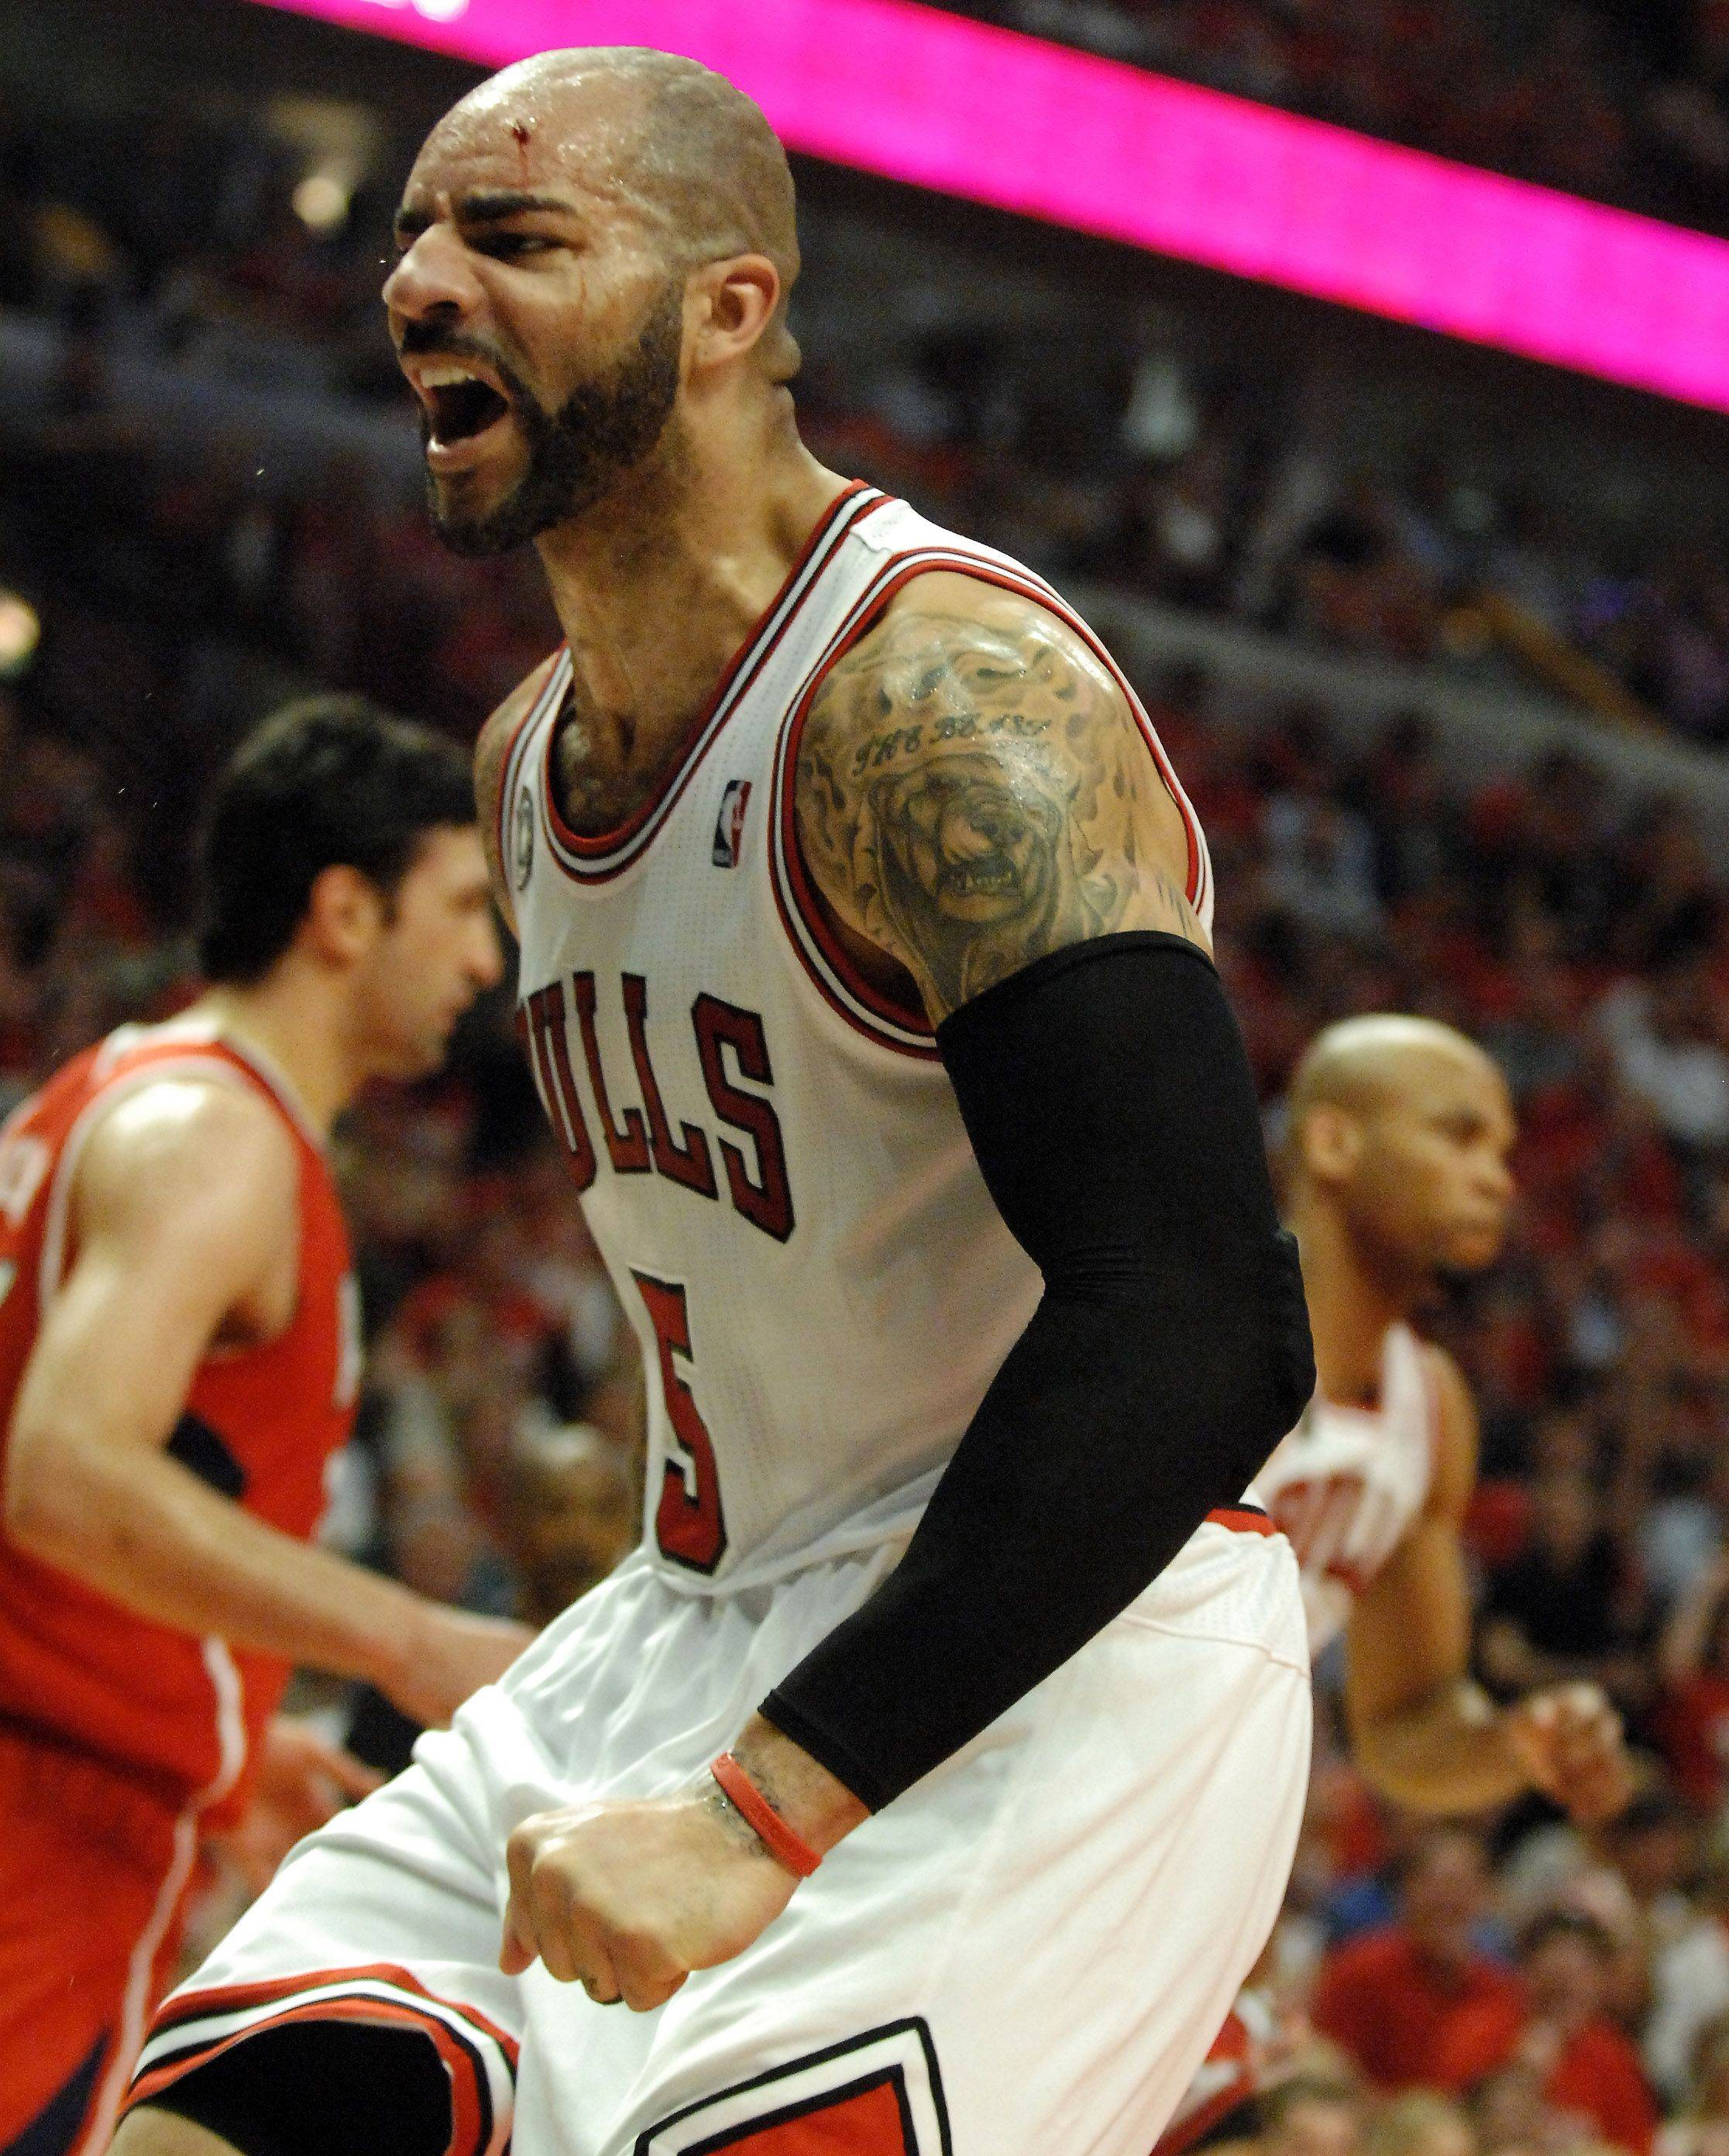 Bulls power forward Carlos Boozer starts to bleed during game 5 at the United Center.